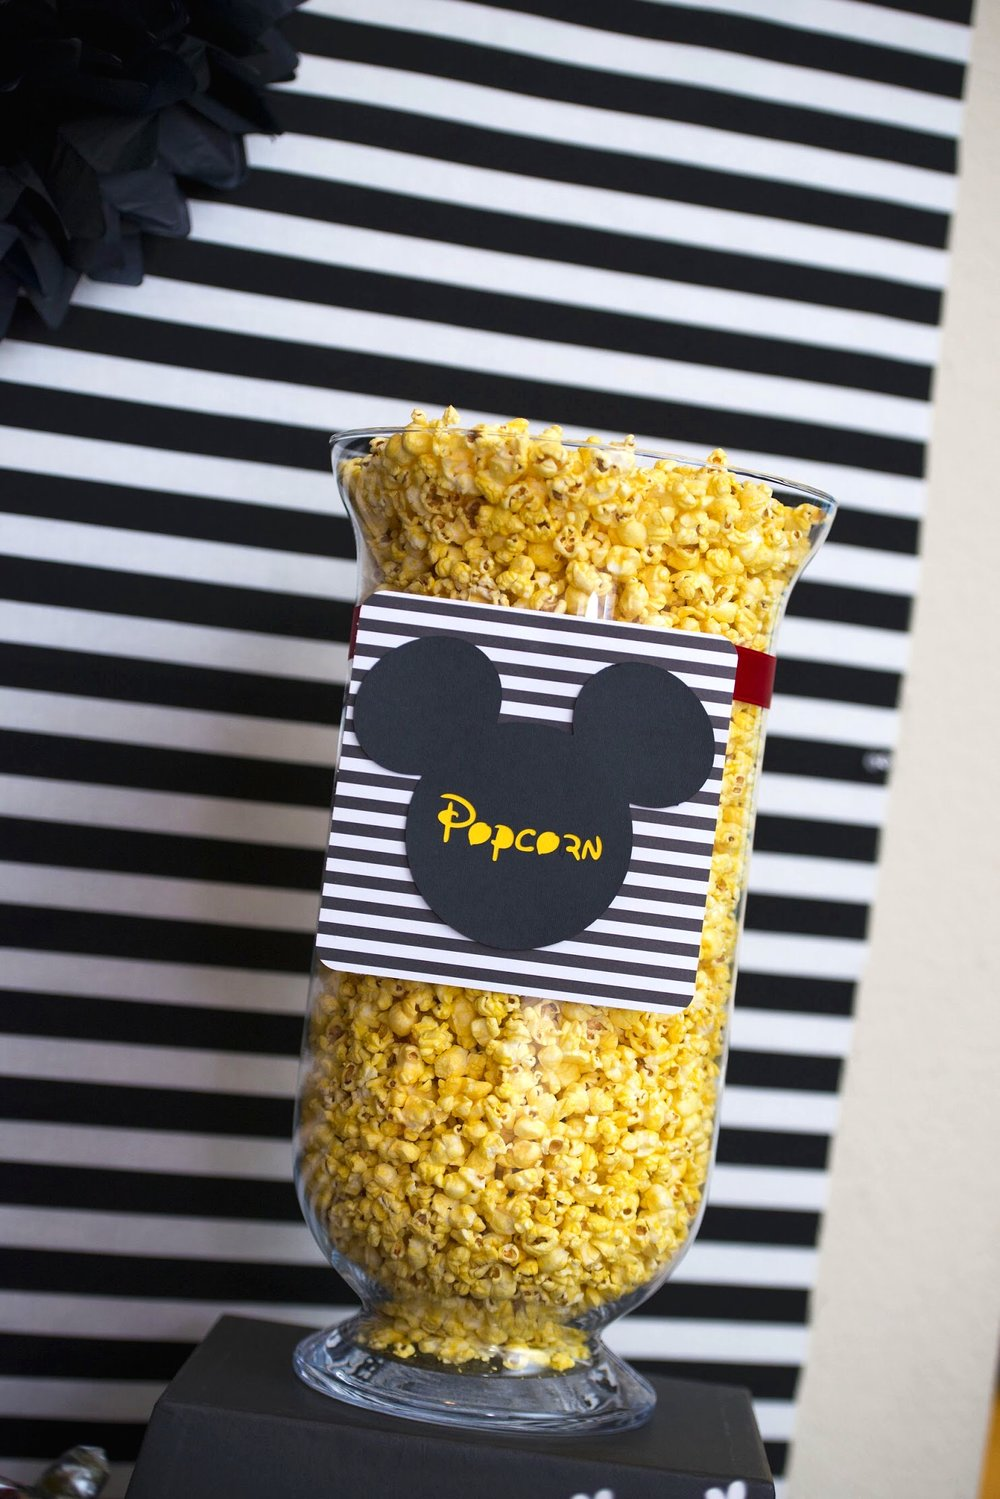 Who doesn't love Disney popcorn, perfect for a Disney movie Night!